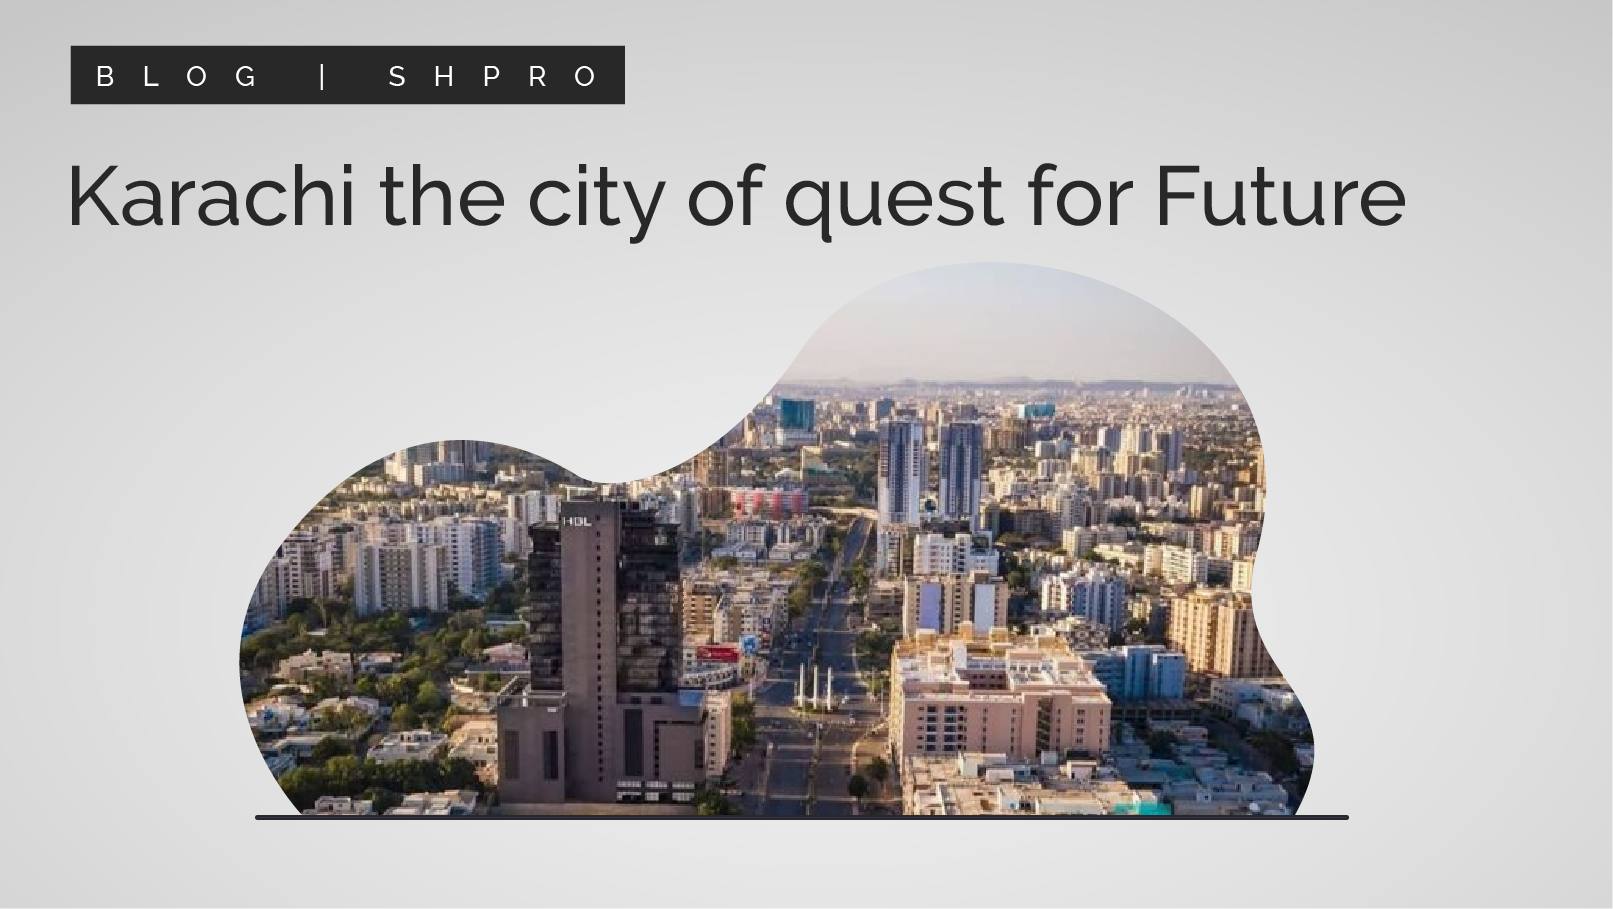 Karachi The City of Quest For Future